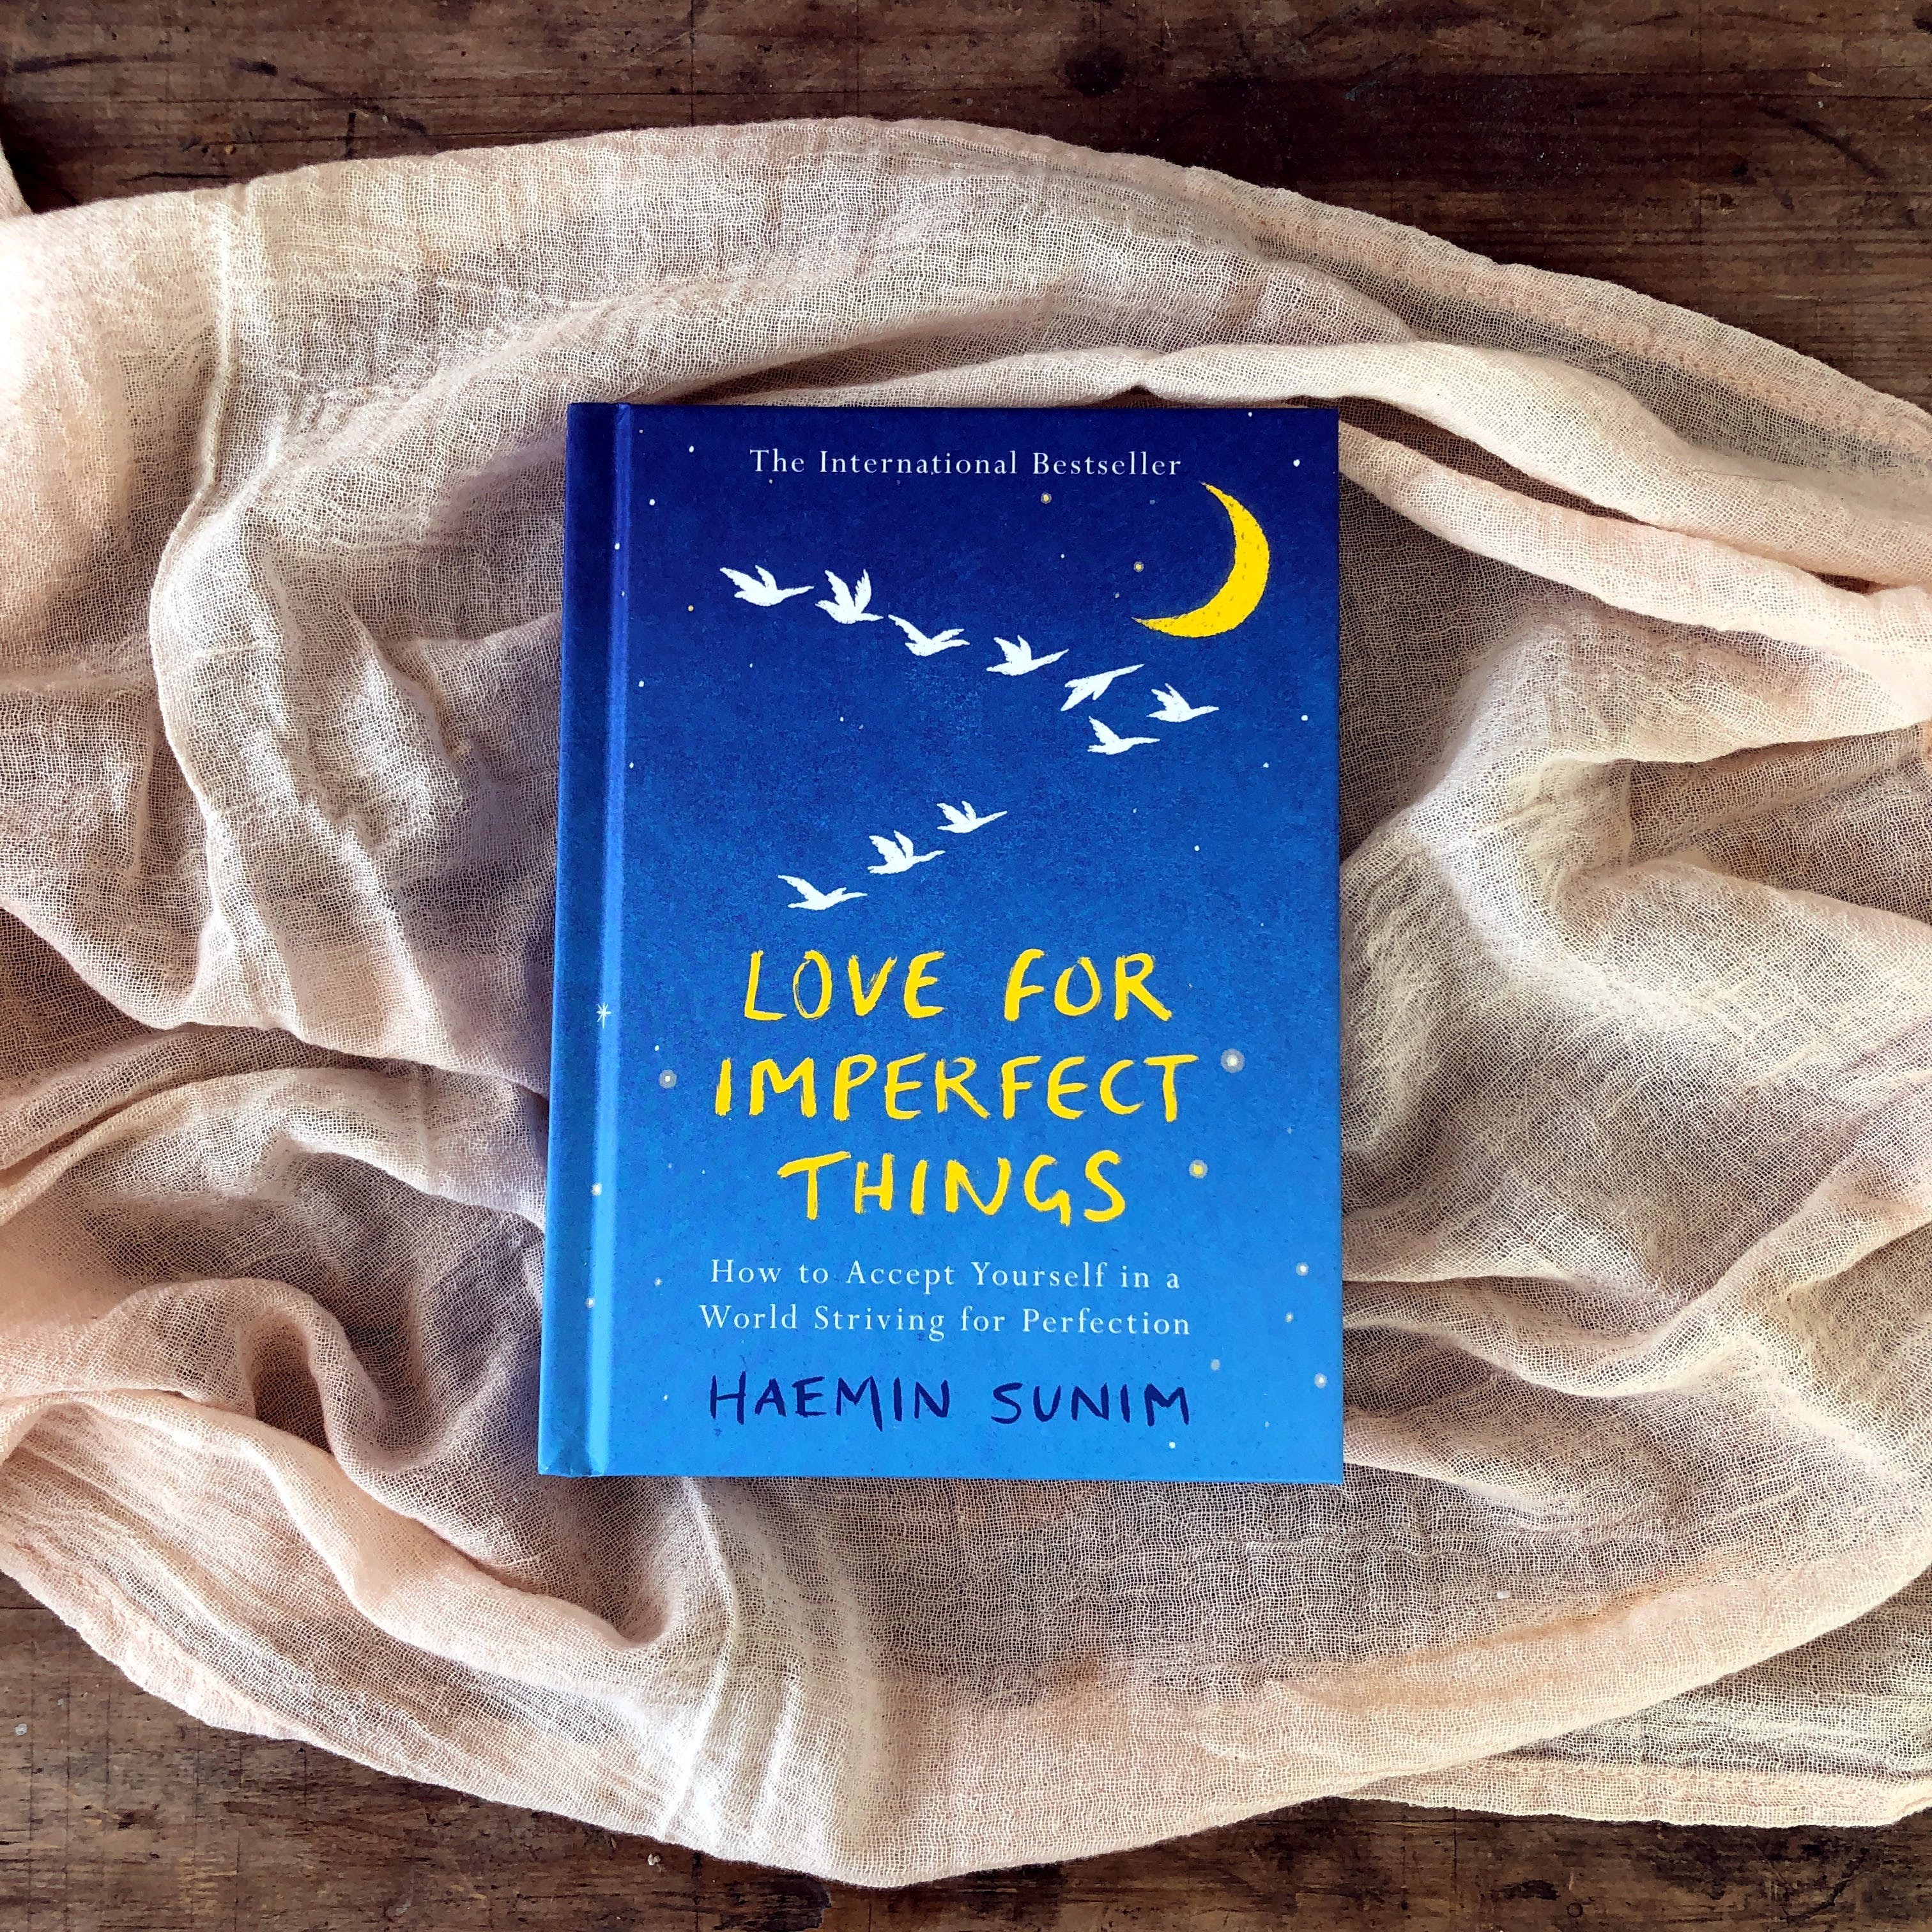 A beautiful book that teaches you to accept yourself